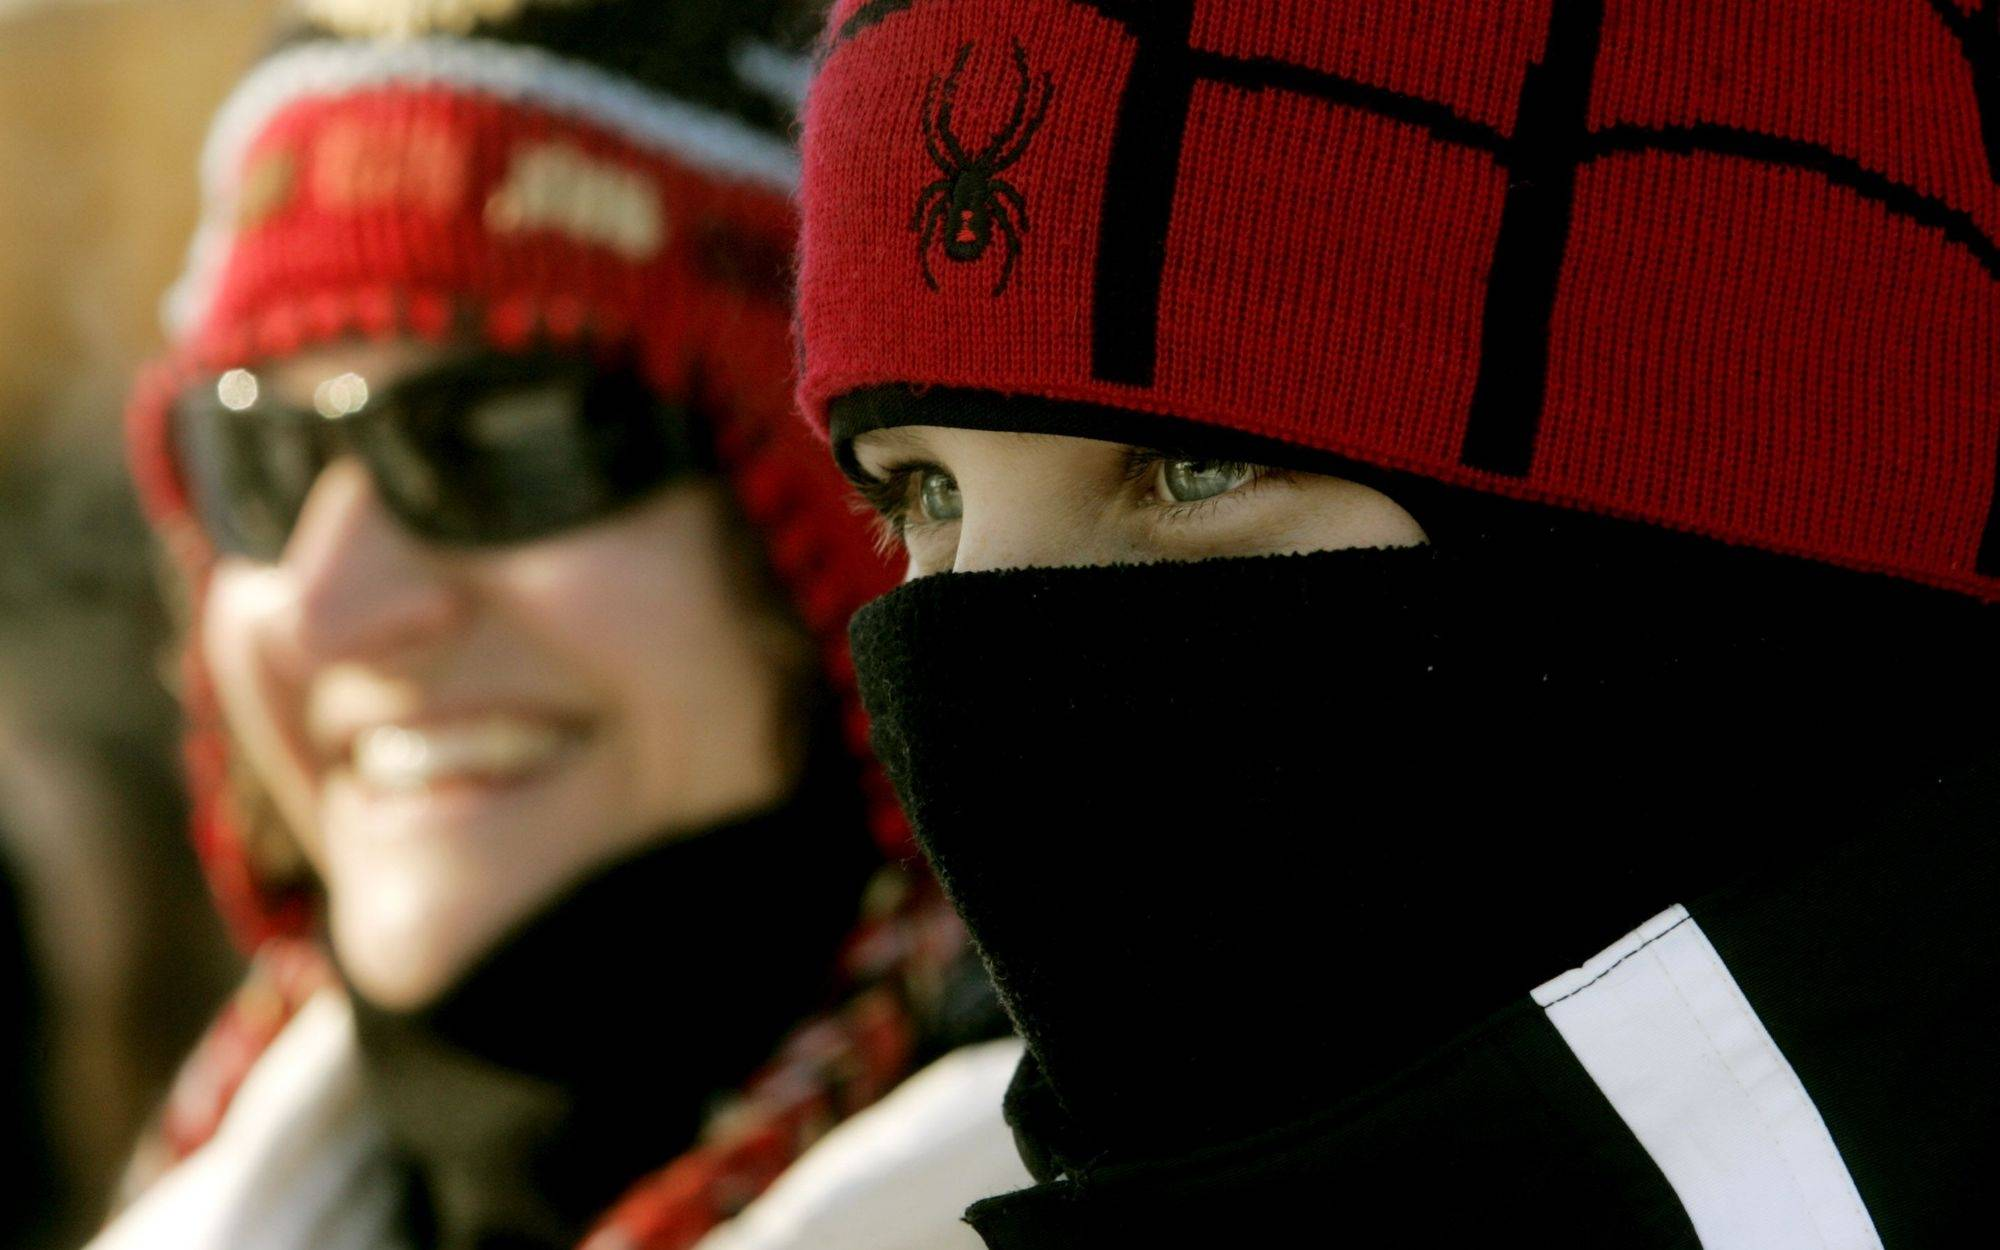 St. Charles residents Lora Severson, left, and Vincent Margiotta, right, bundle up against the cold Sunday during the 32nd Yule Log hunt at Morton Arboretum in Lisle.